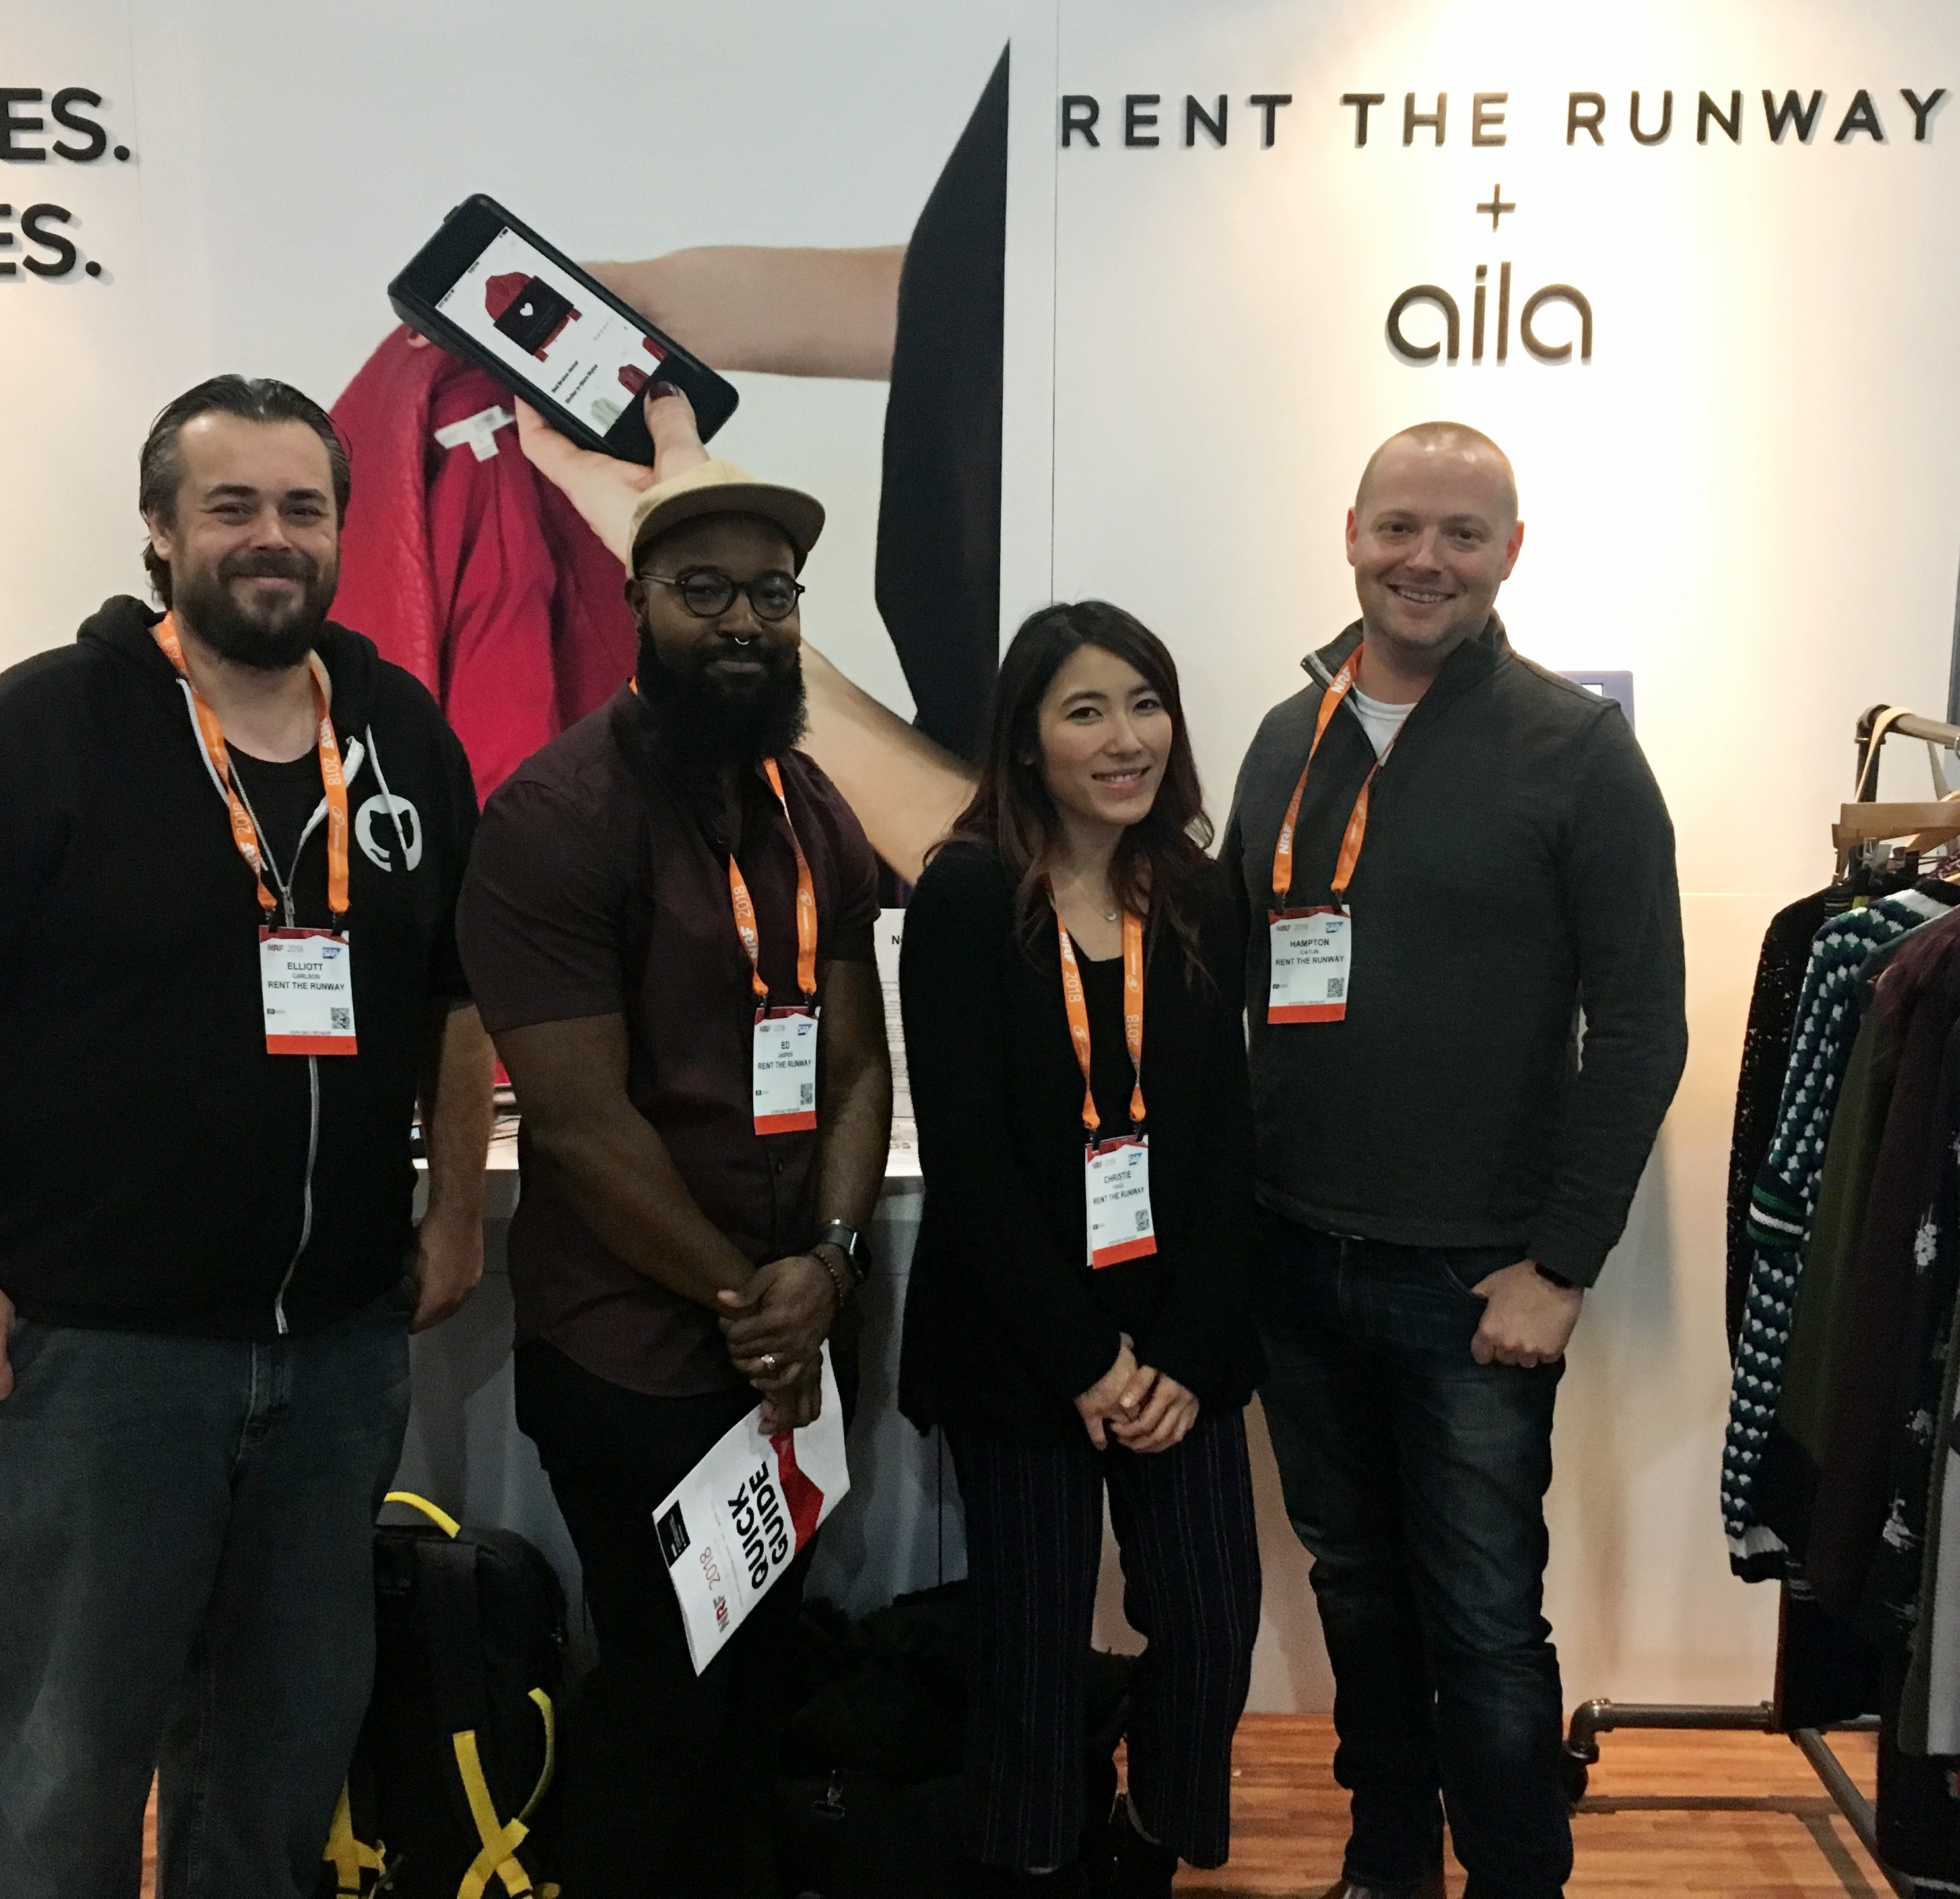 Members of the Rent the Runway team at Aila's NRF booth.